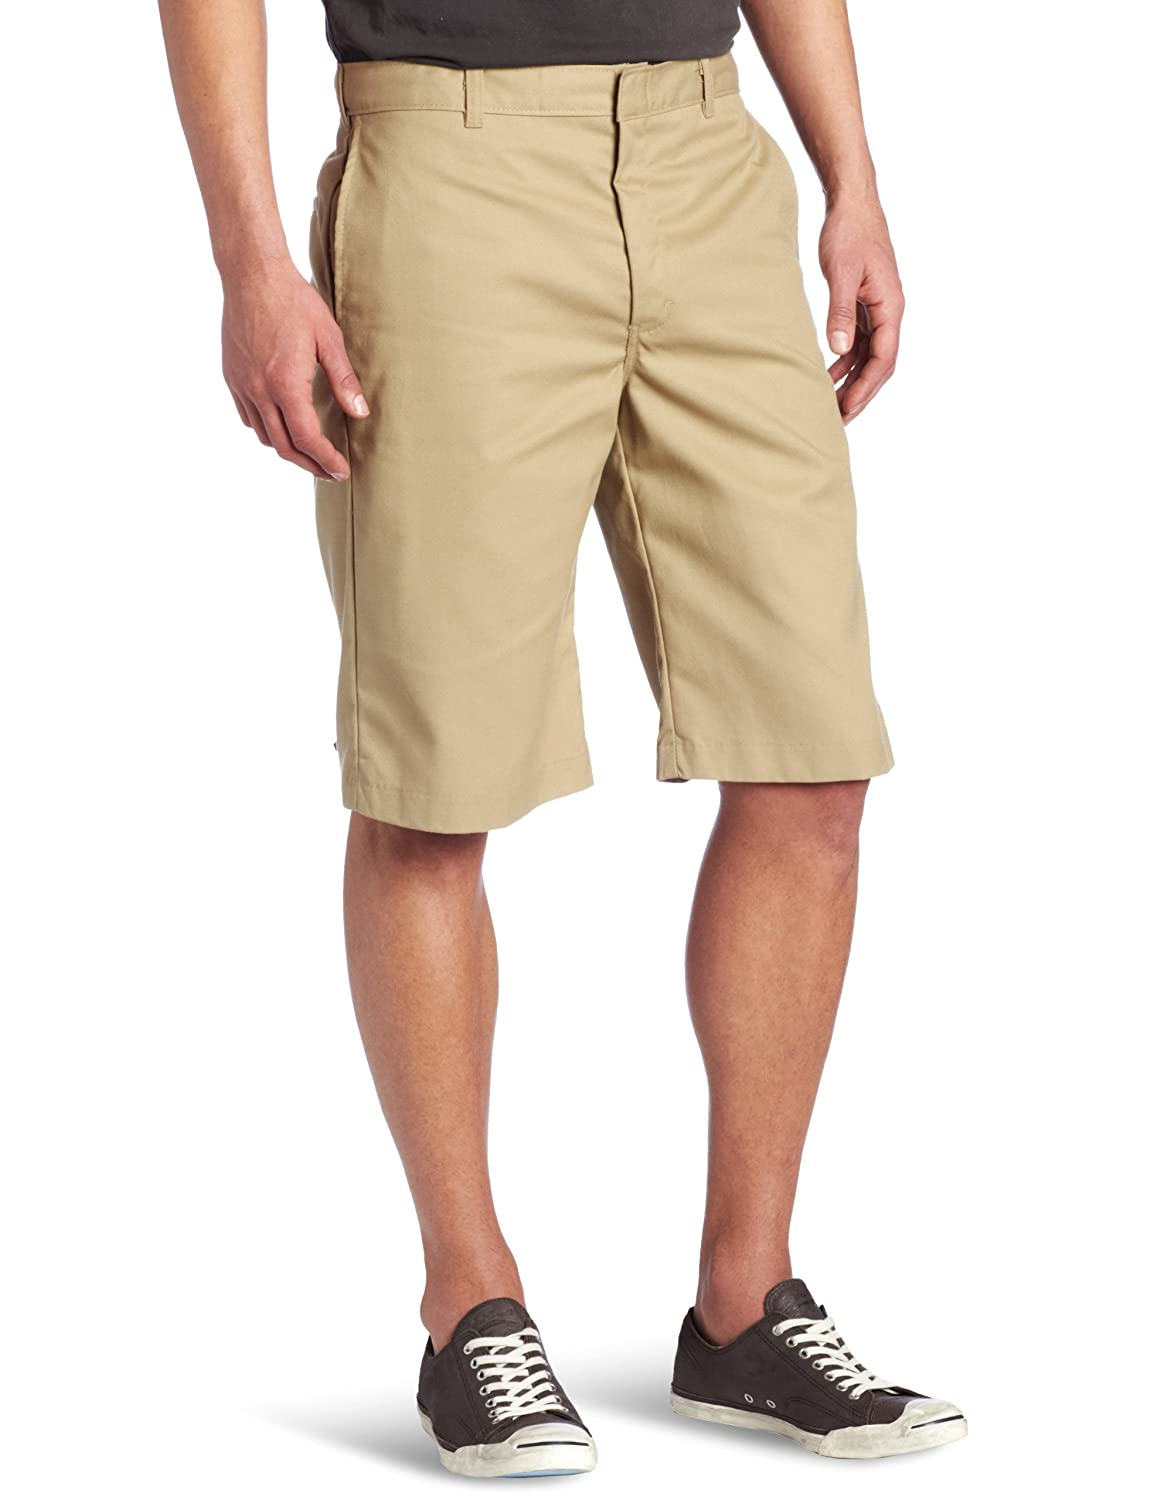 Dickies Young Men's Flat-Front Short Williamson Dickie Mfg Co. 27282